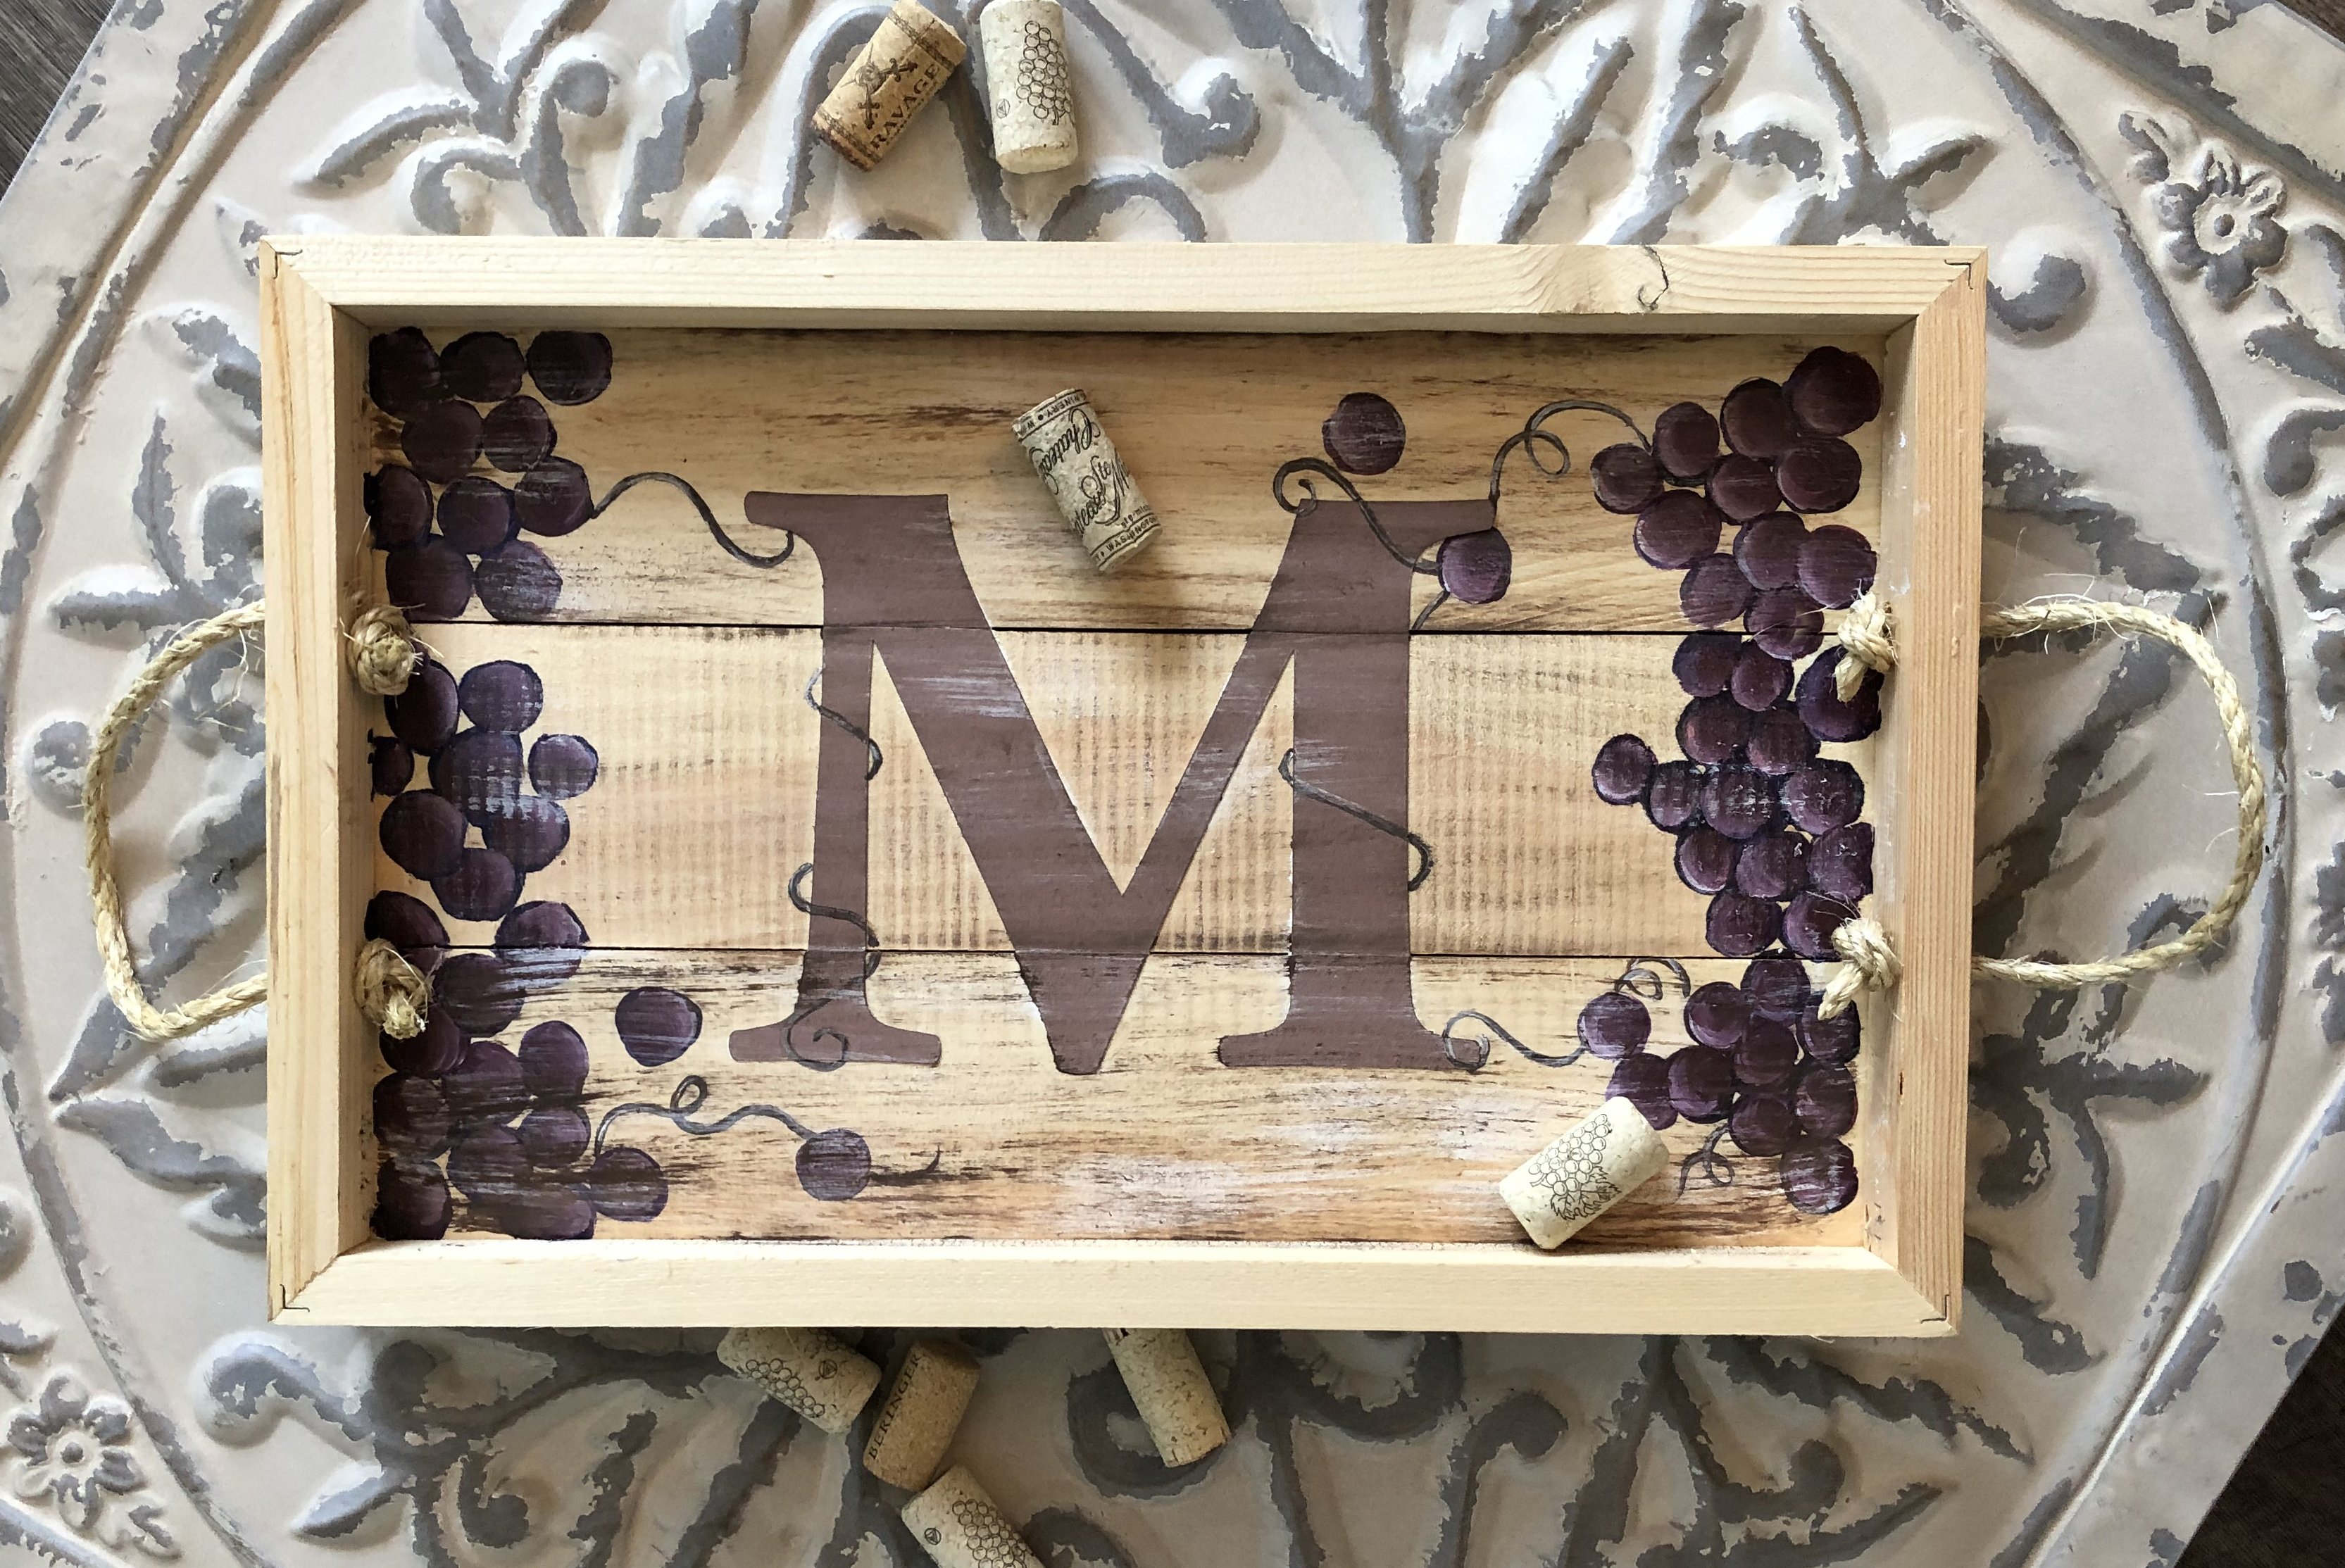 MONOGRAM WOODEN TRAY - SEPT 12 - 6:30PM - REGENCY WINE BAR